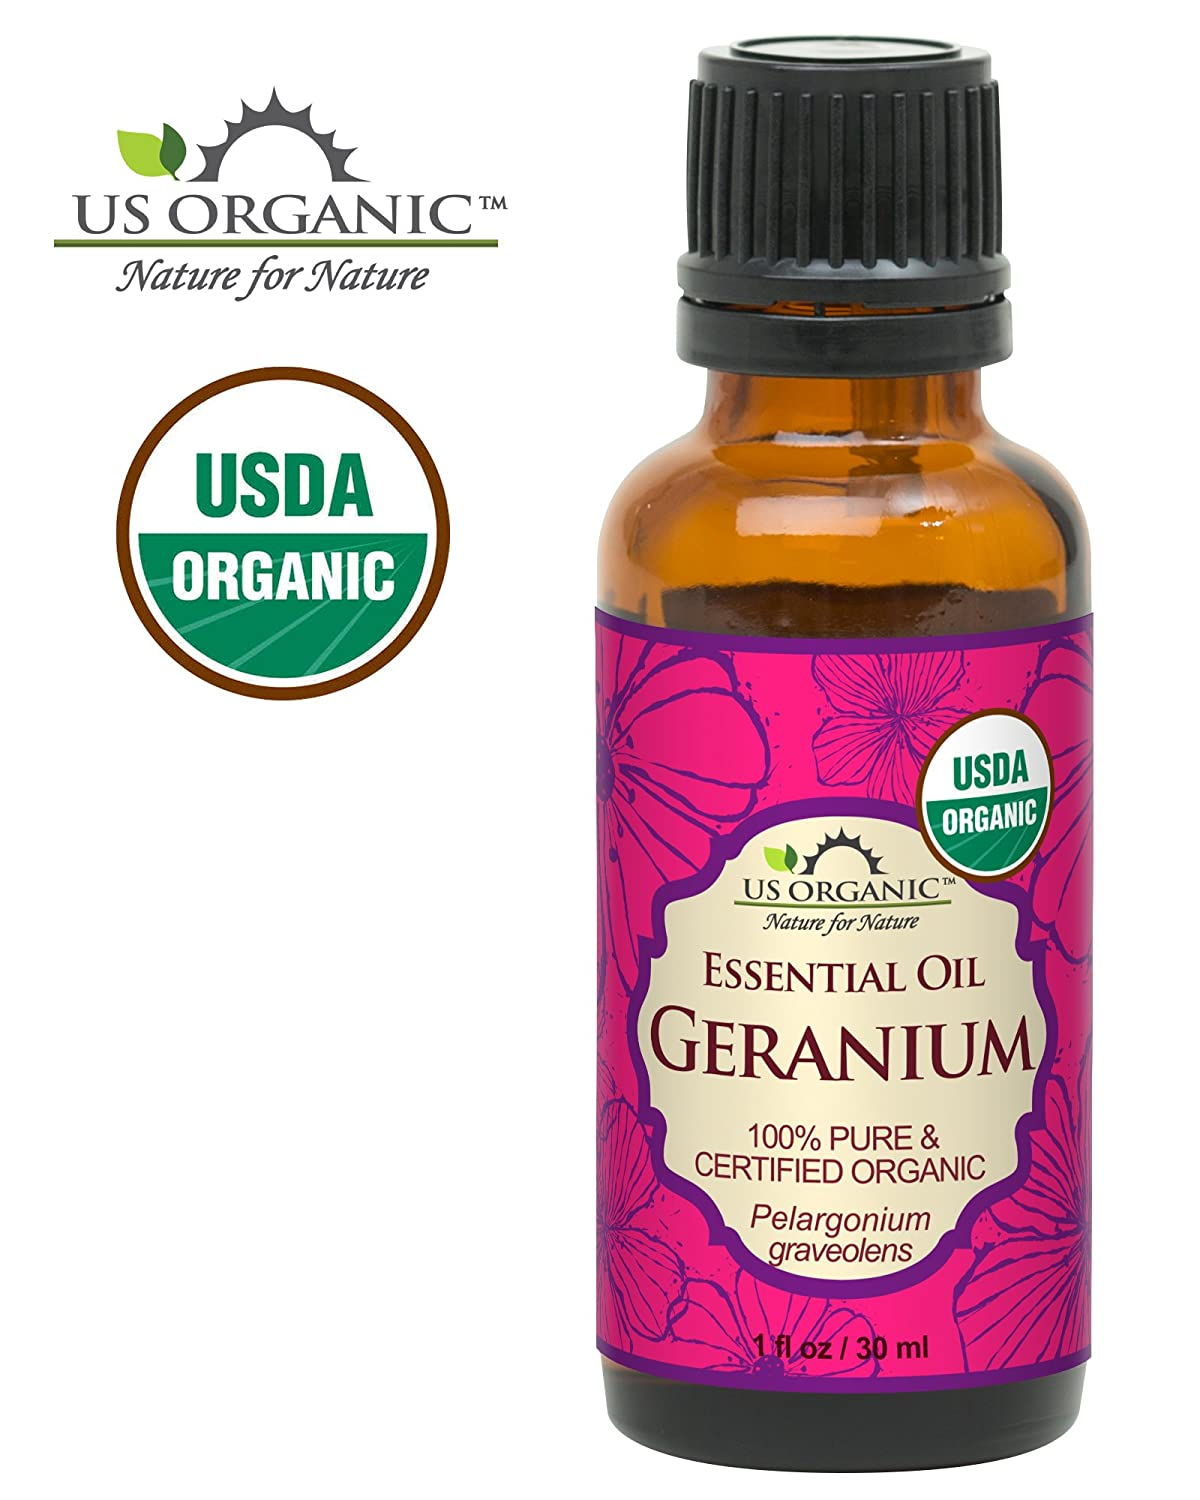 US Organic 100% Pure Geranium Essential Oil - USDA Certified Organic, Steam Distilled - W/Euro droppers (More Size Variations Available) (10 ml/.33 fl oz) US Organic Group Corp